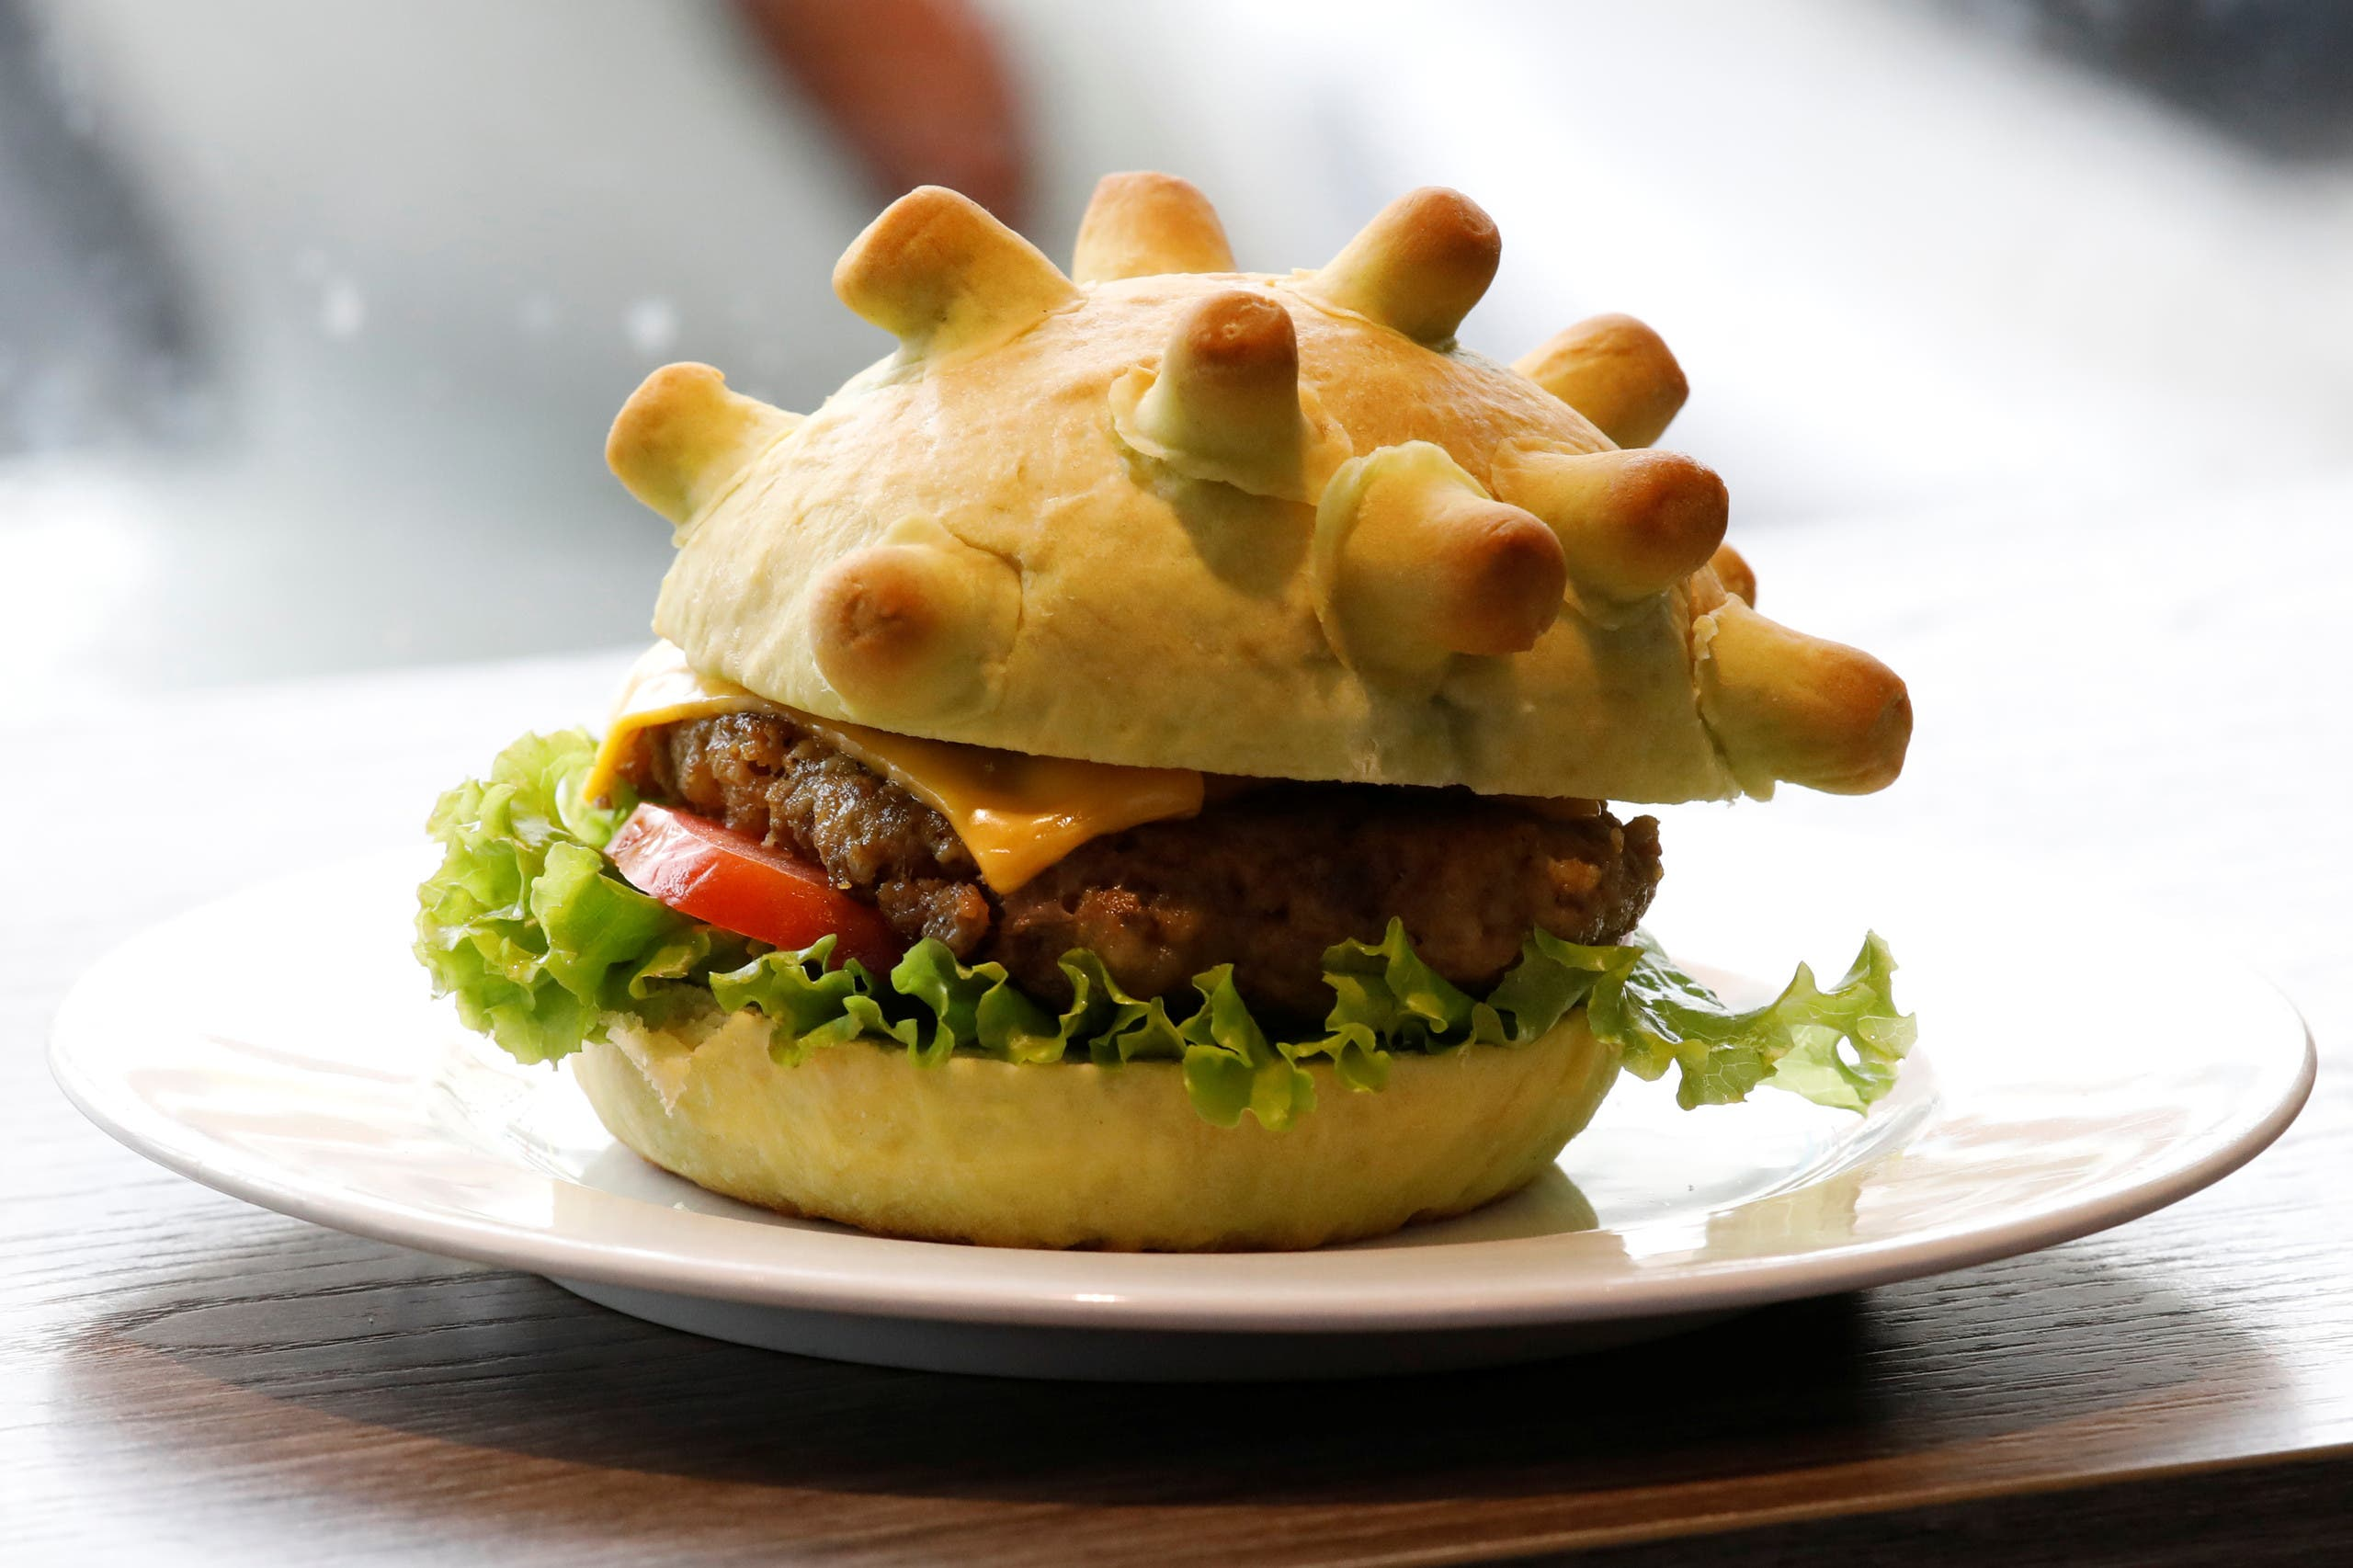 A burger shaped as coronavirus is seen at a restaurant in Hanoi, Vietnam March 25, 2020. (Reuters)